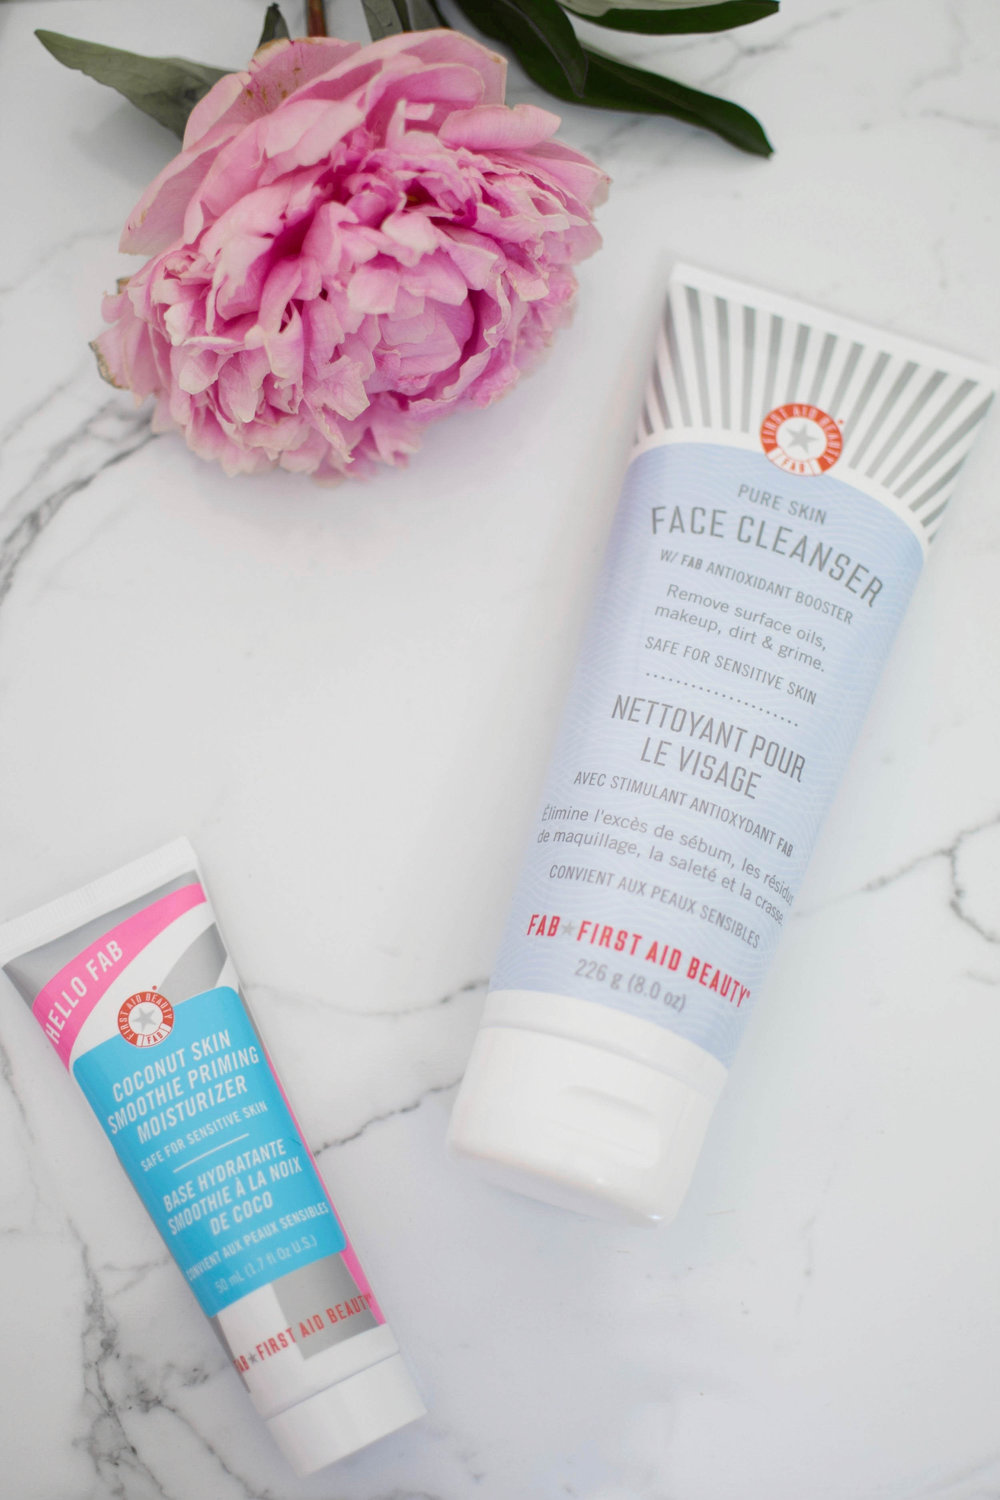 first aid beauty face cleanser & priming moisturizer / beauty talk / beauty review